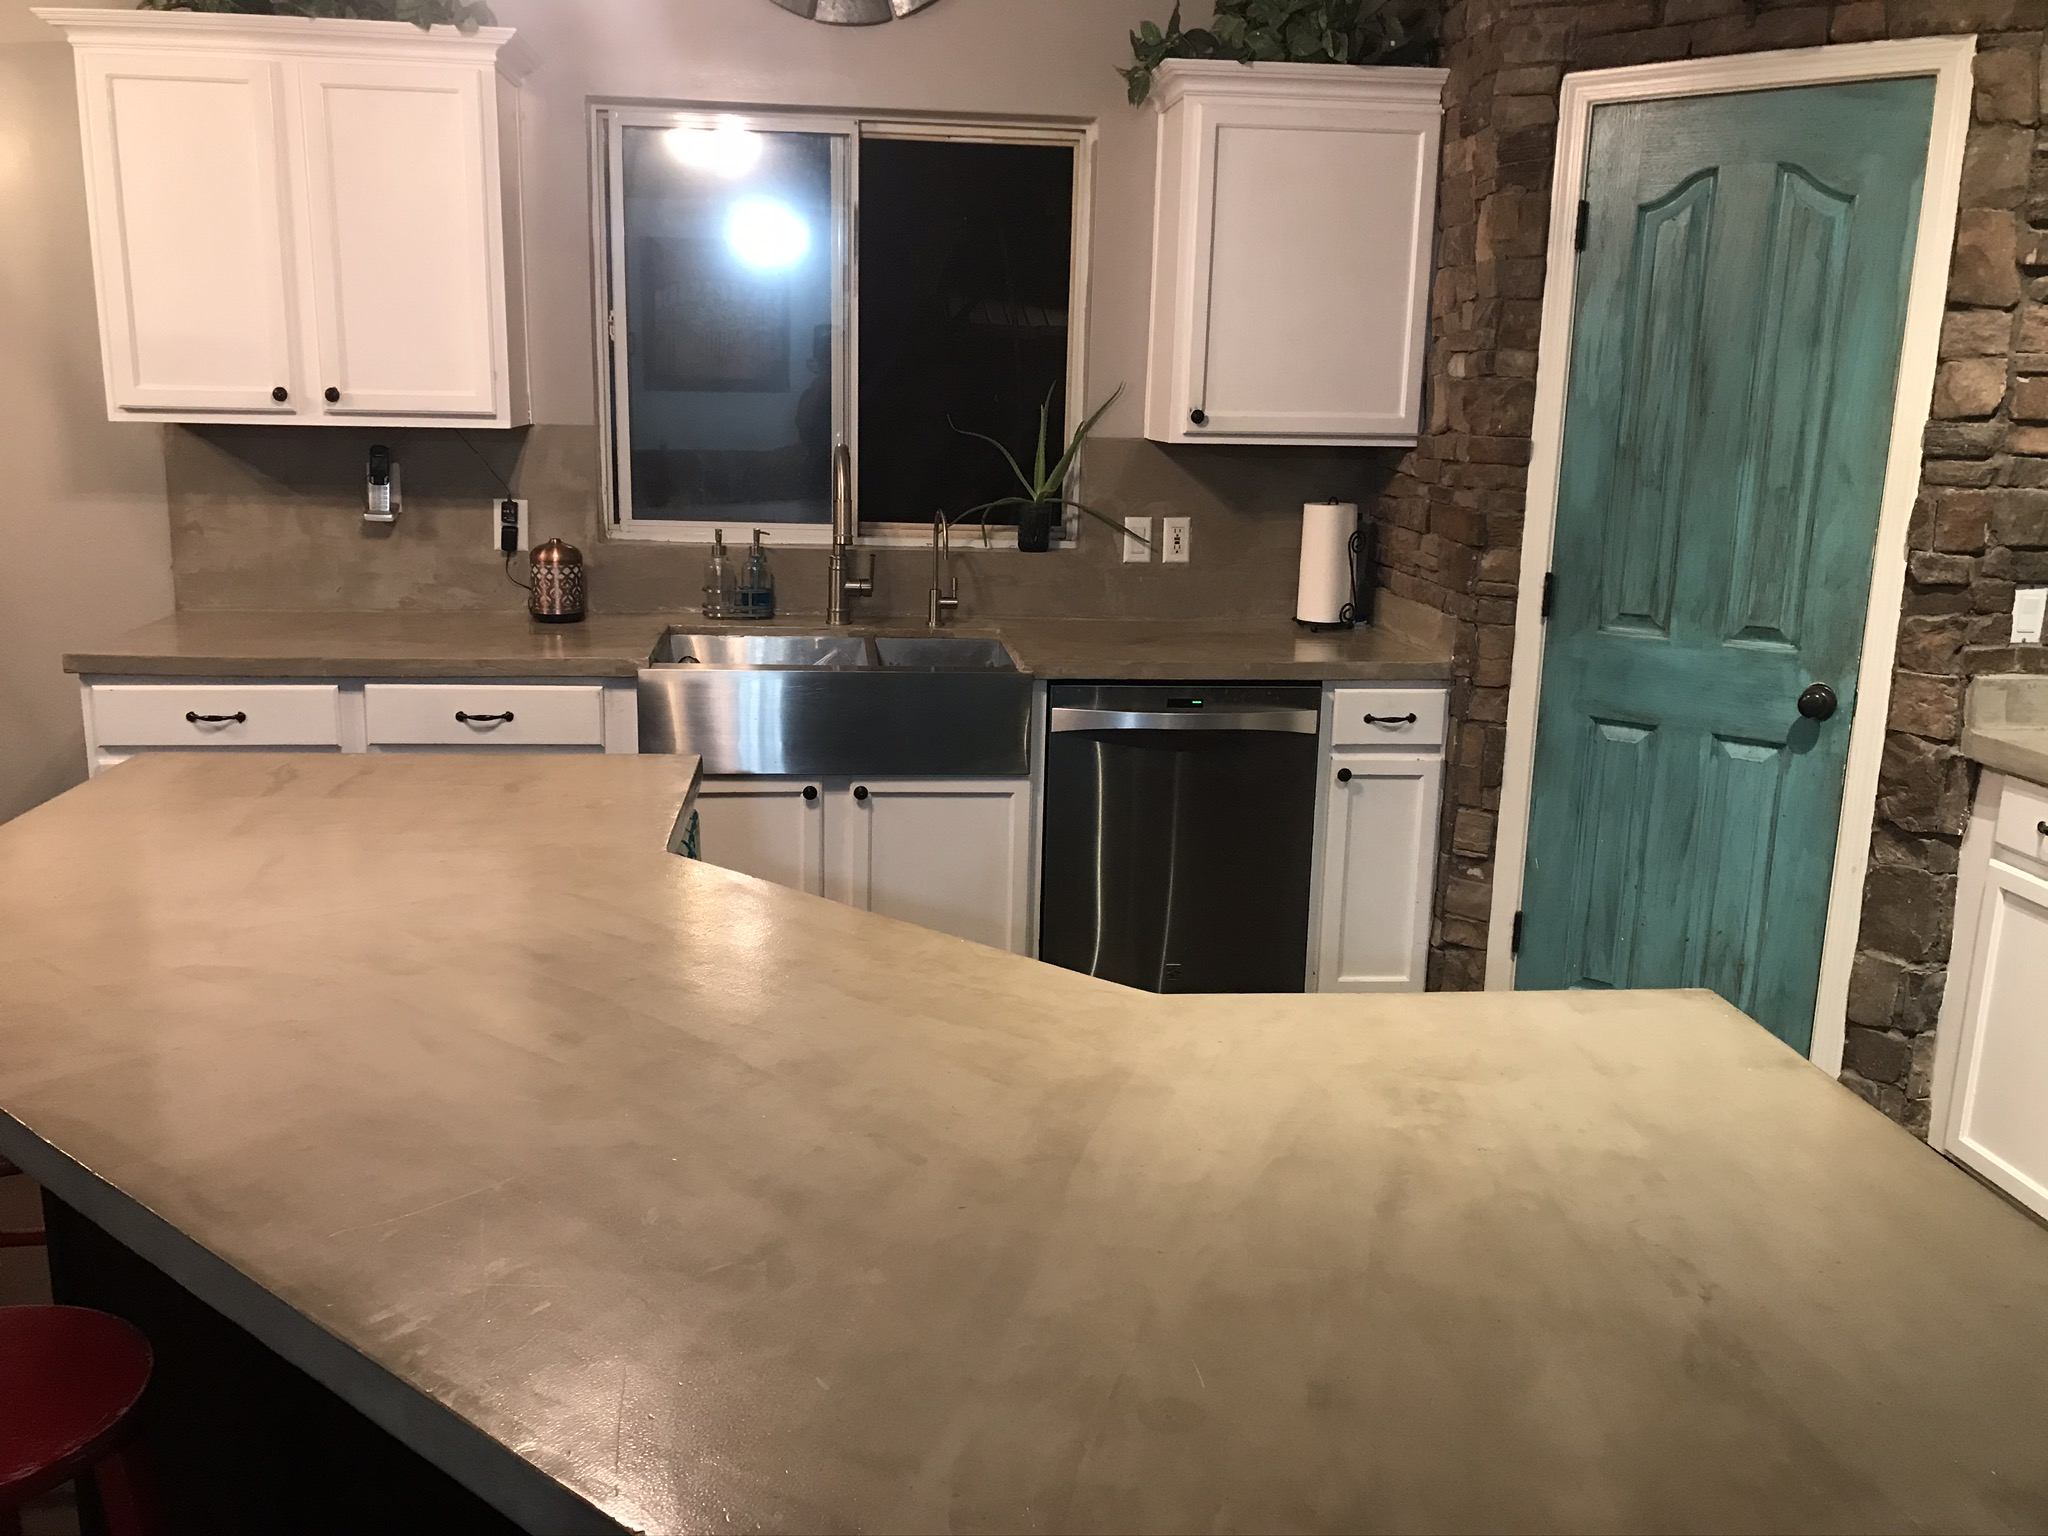 Overview of kitchen concrete countertops